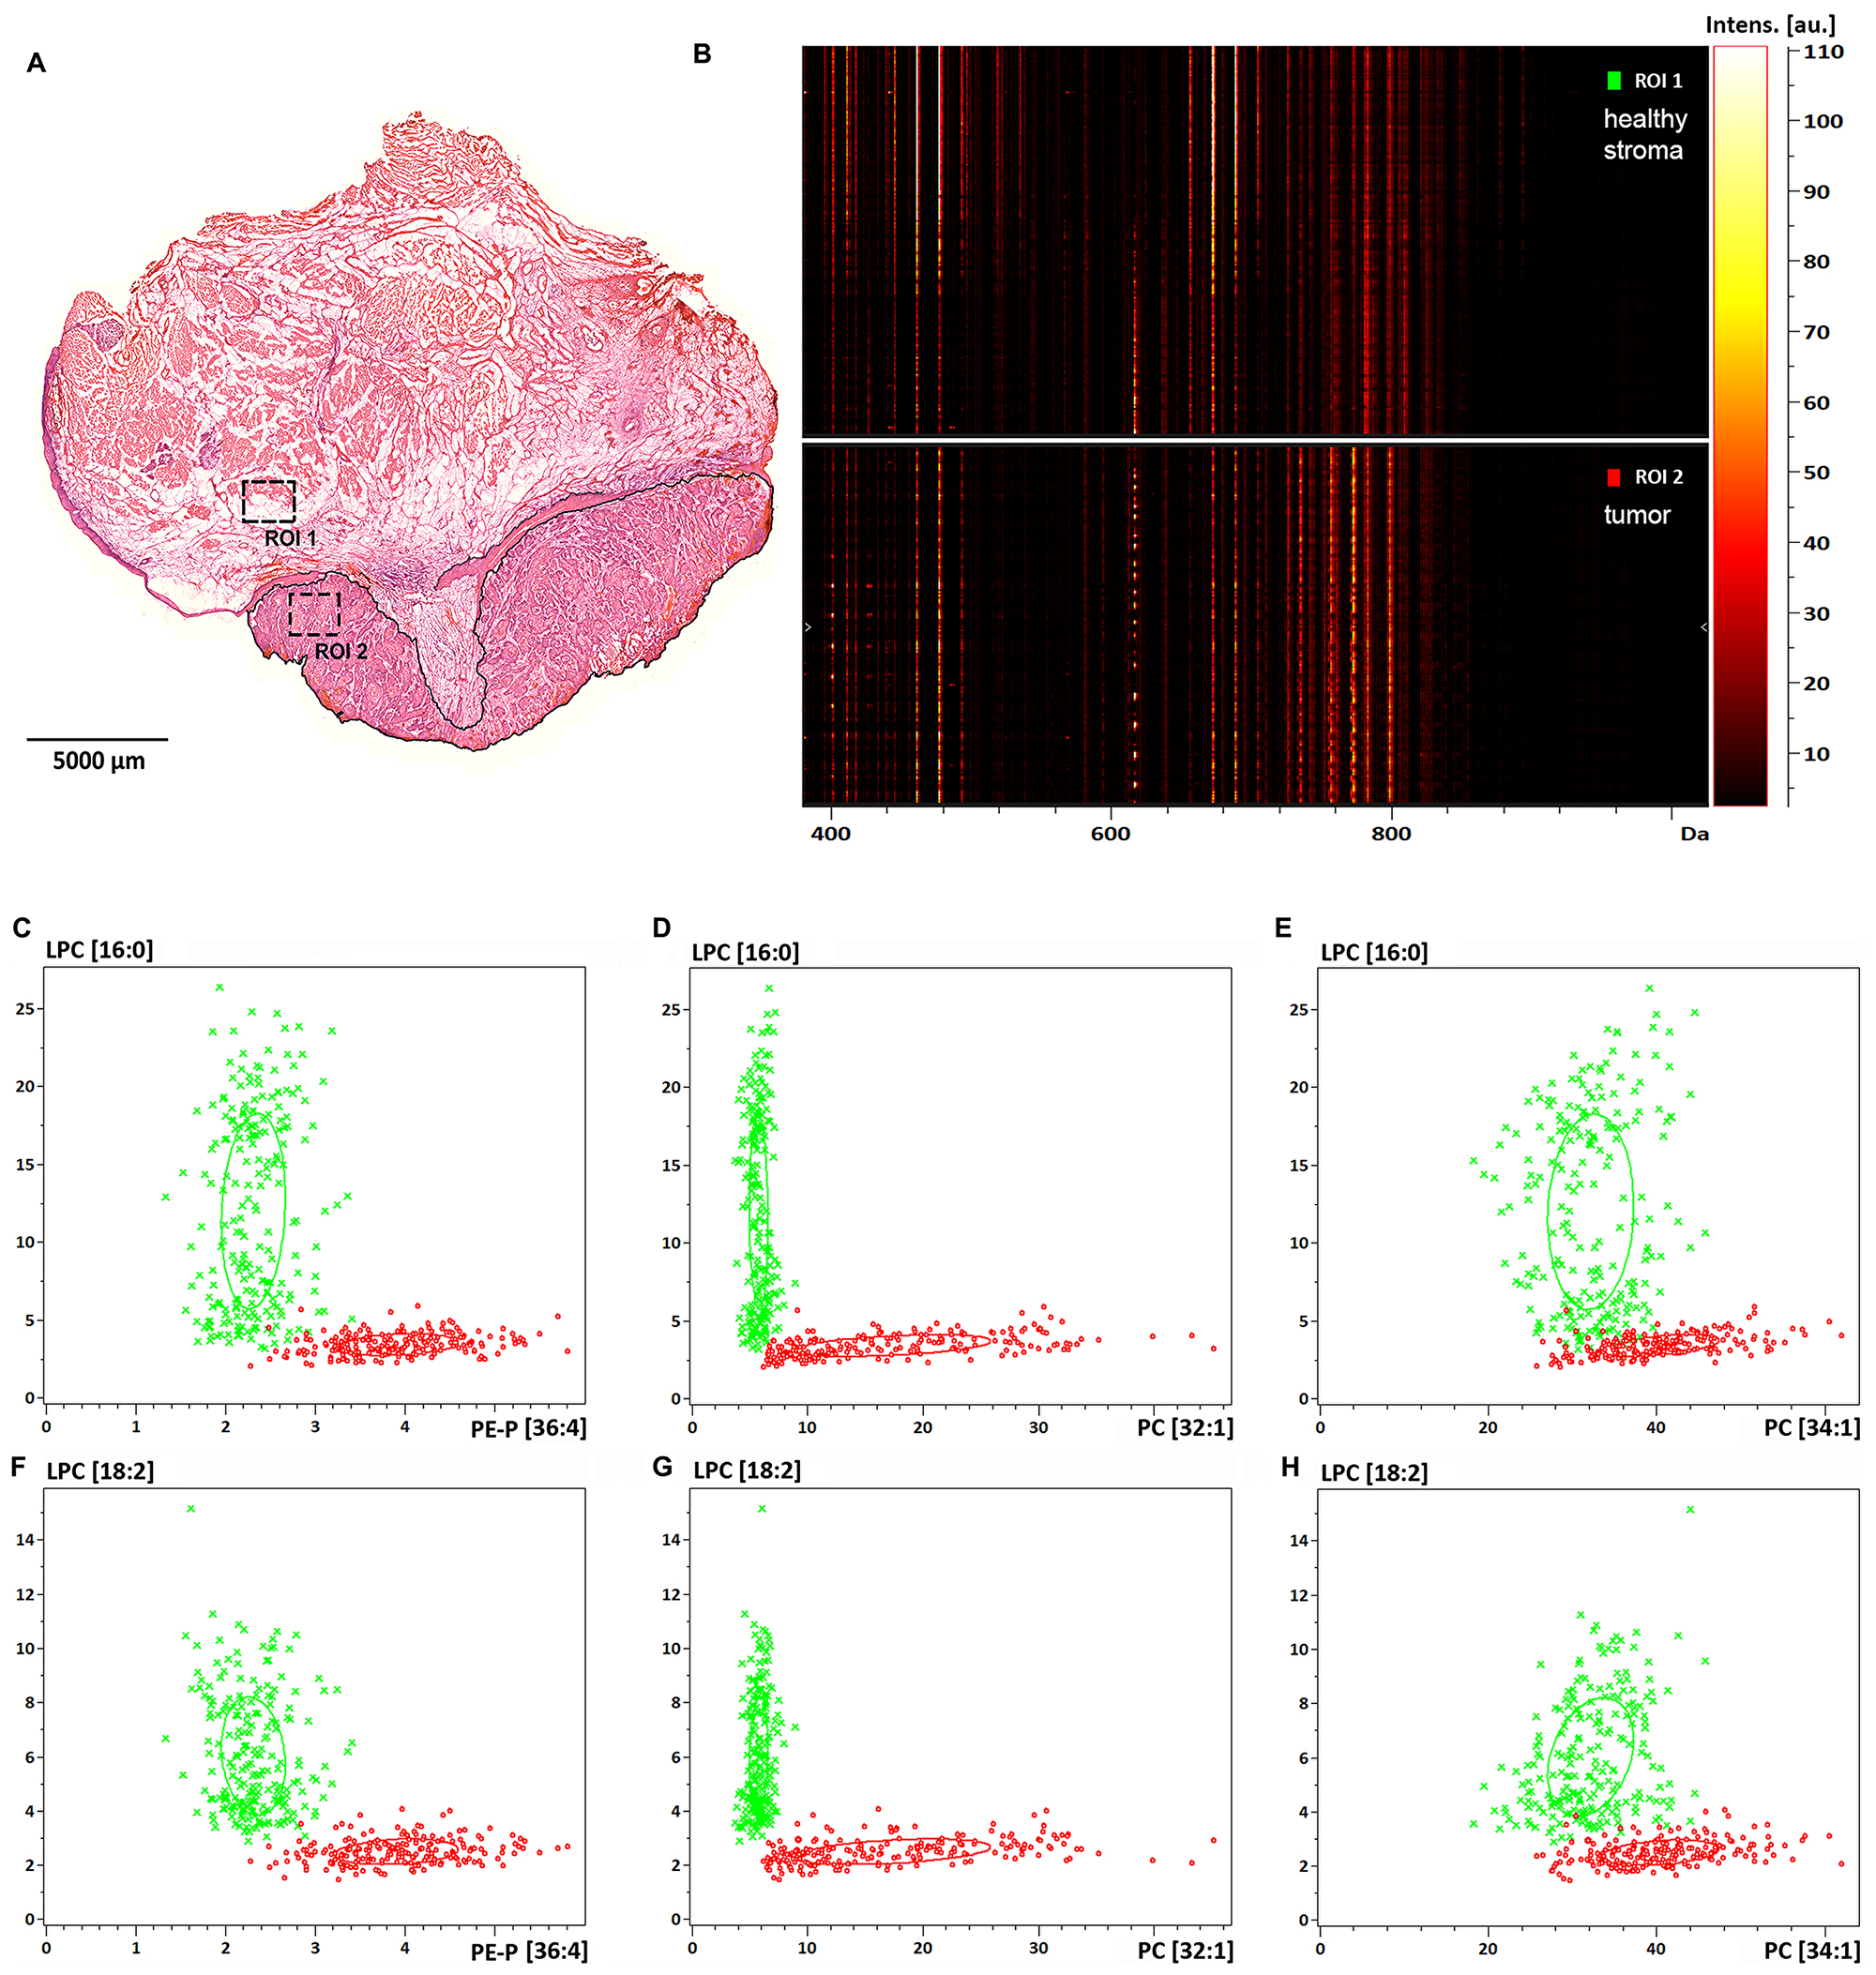 Lipid expression and spatial distribution analysis of biopsy size regions of the tissue sample.